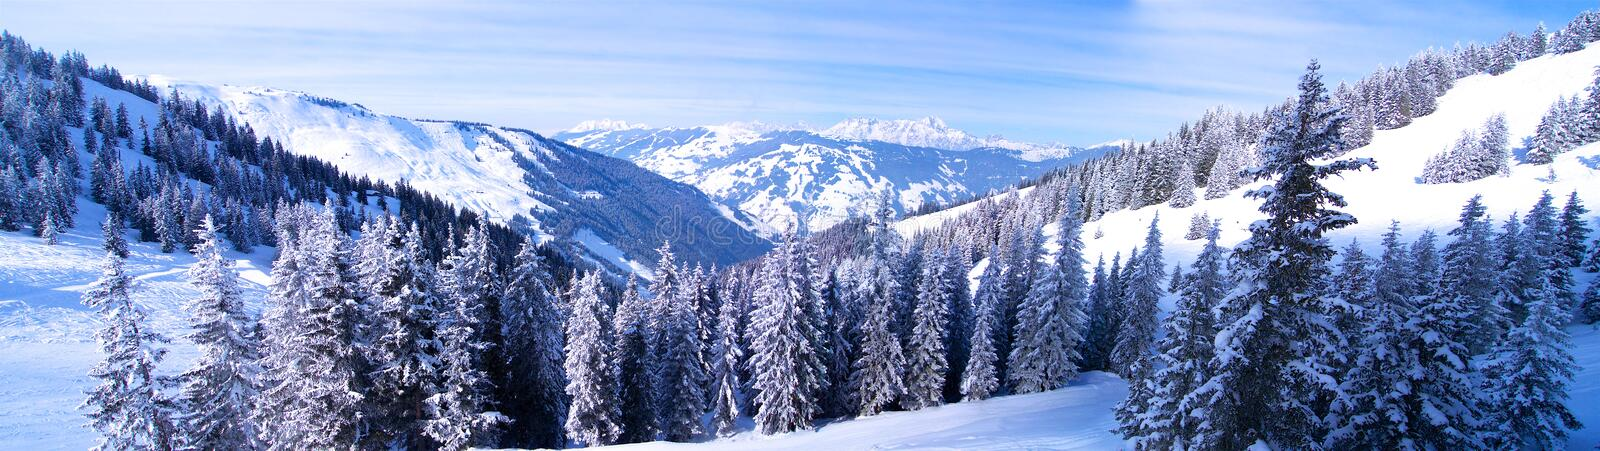 Panorama of forest in winter in the mountains stock photography